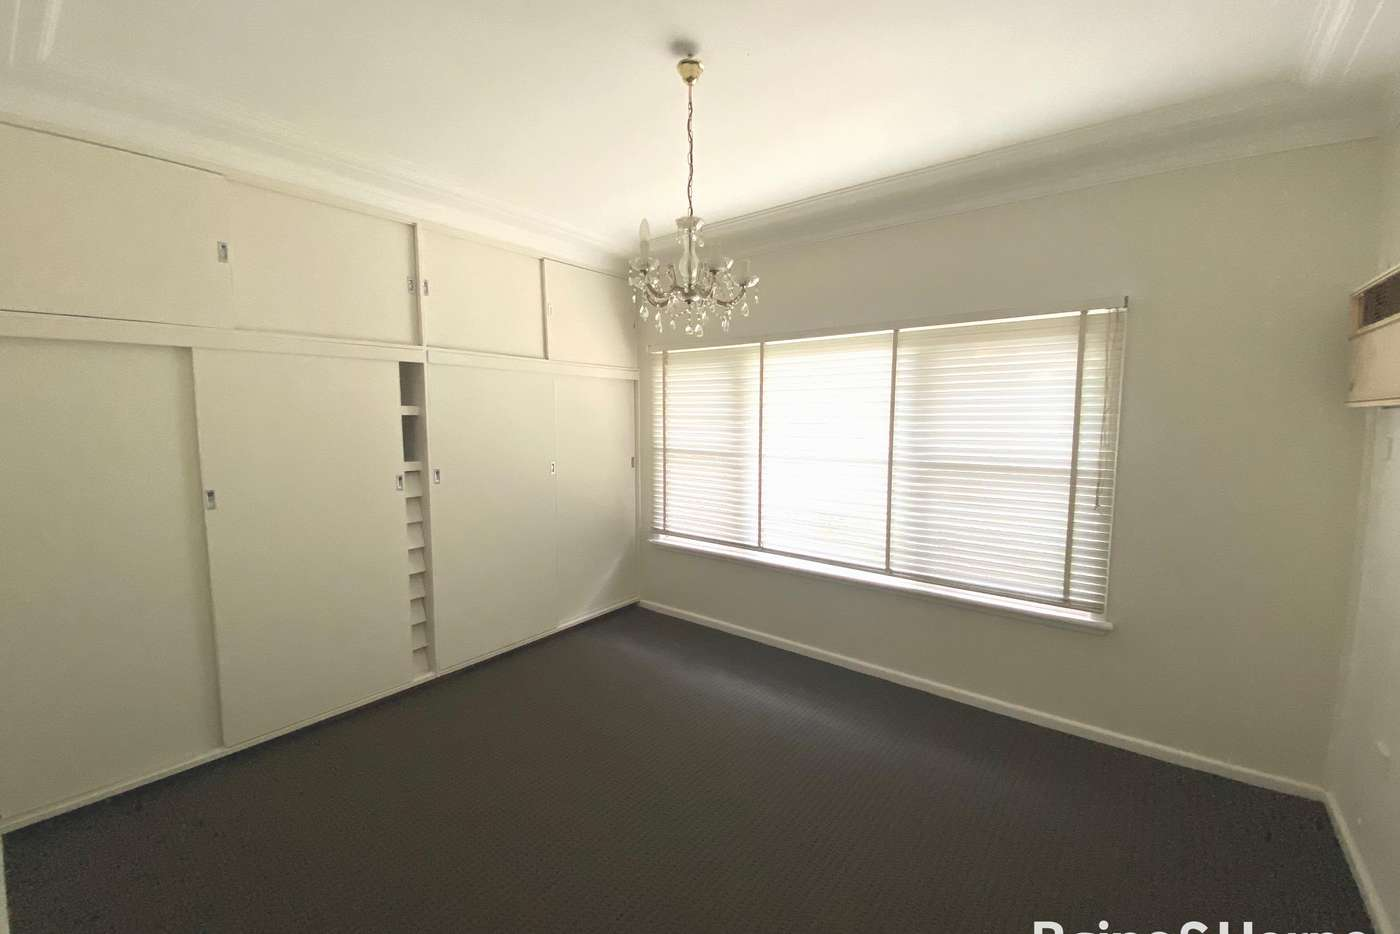 Sixth view of Homely house listing, 14 CHARLES STREET, Baulkham Hills NSW 2153